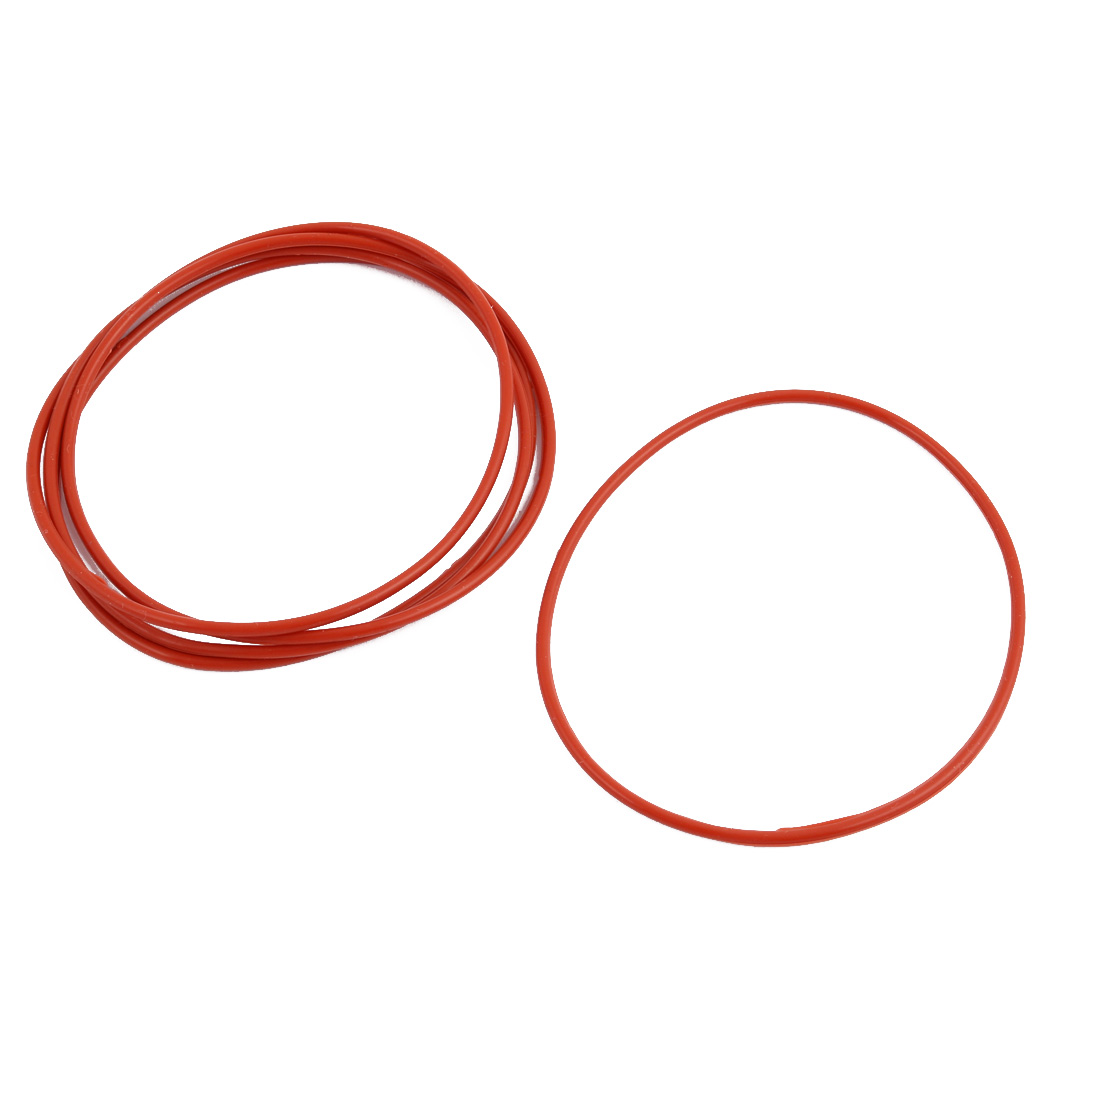 5Pcs Red Round Nitrile Butadiene Rubber NBR O-Ring 70mm OD 1.9mm Width